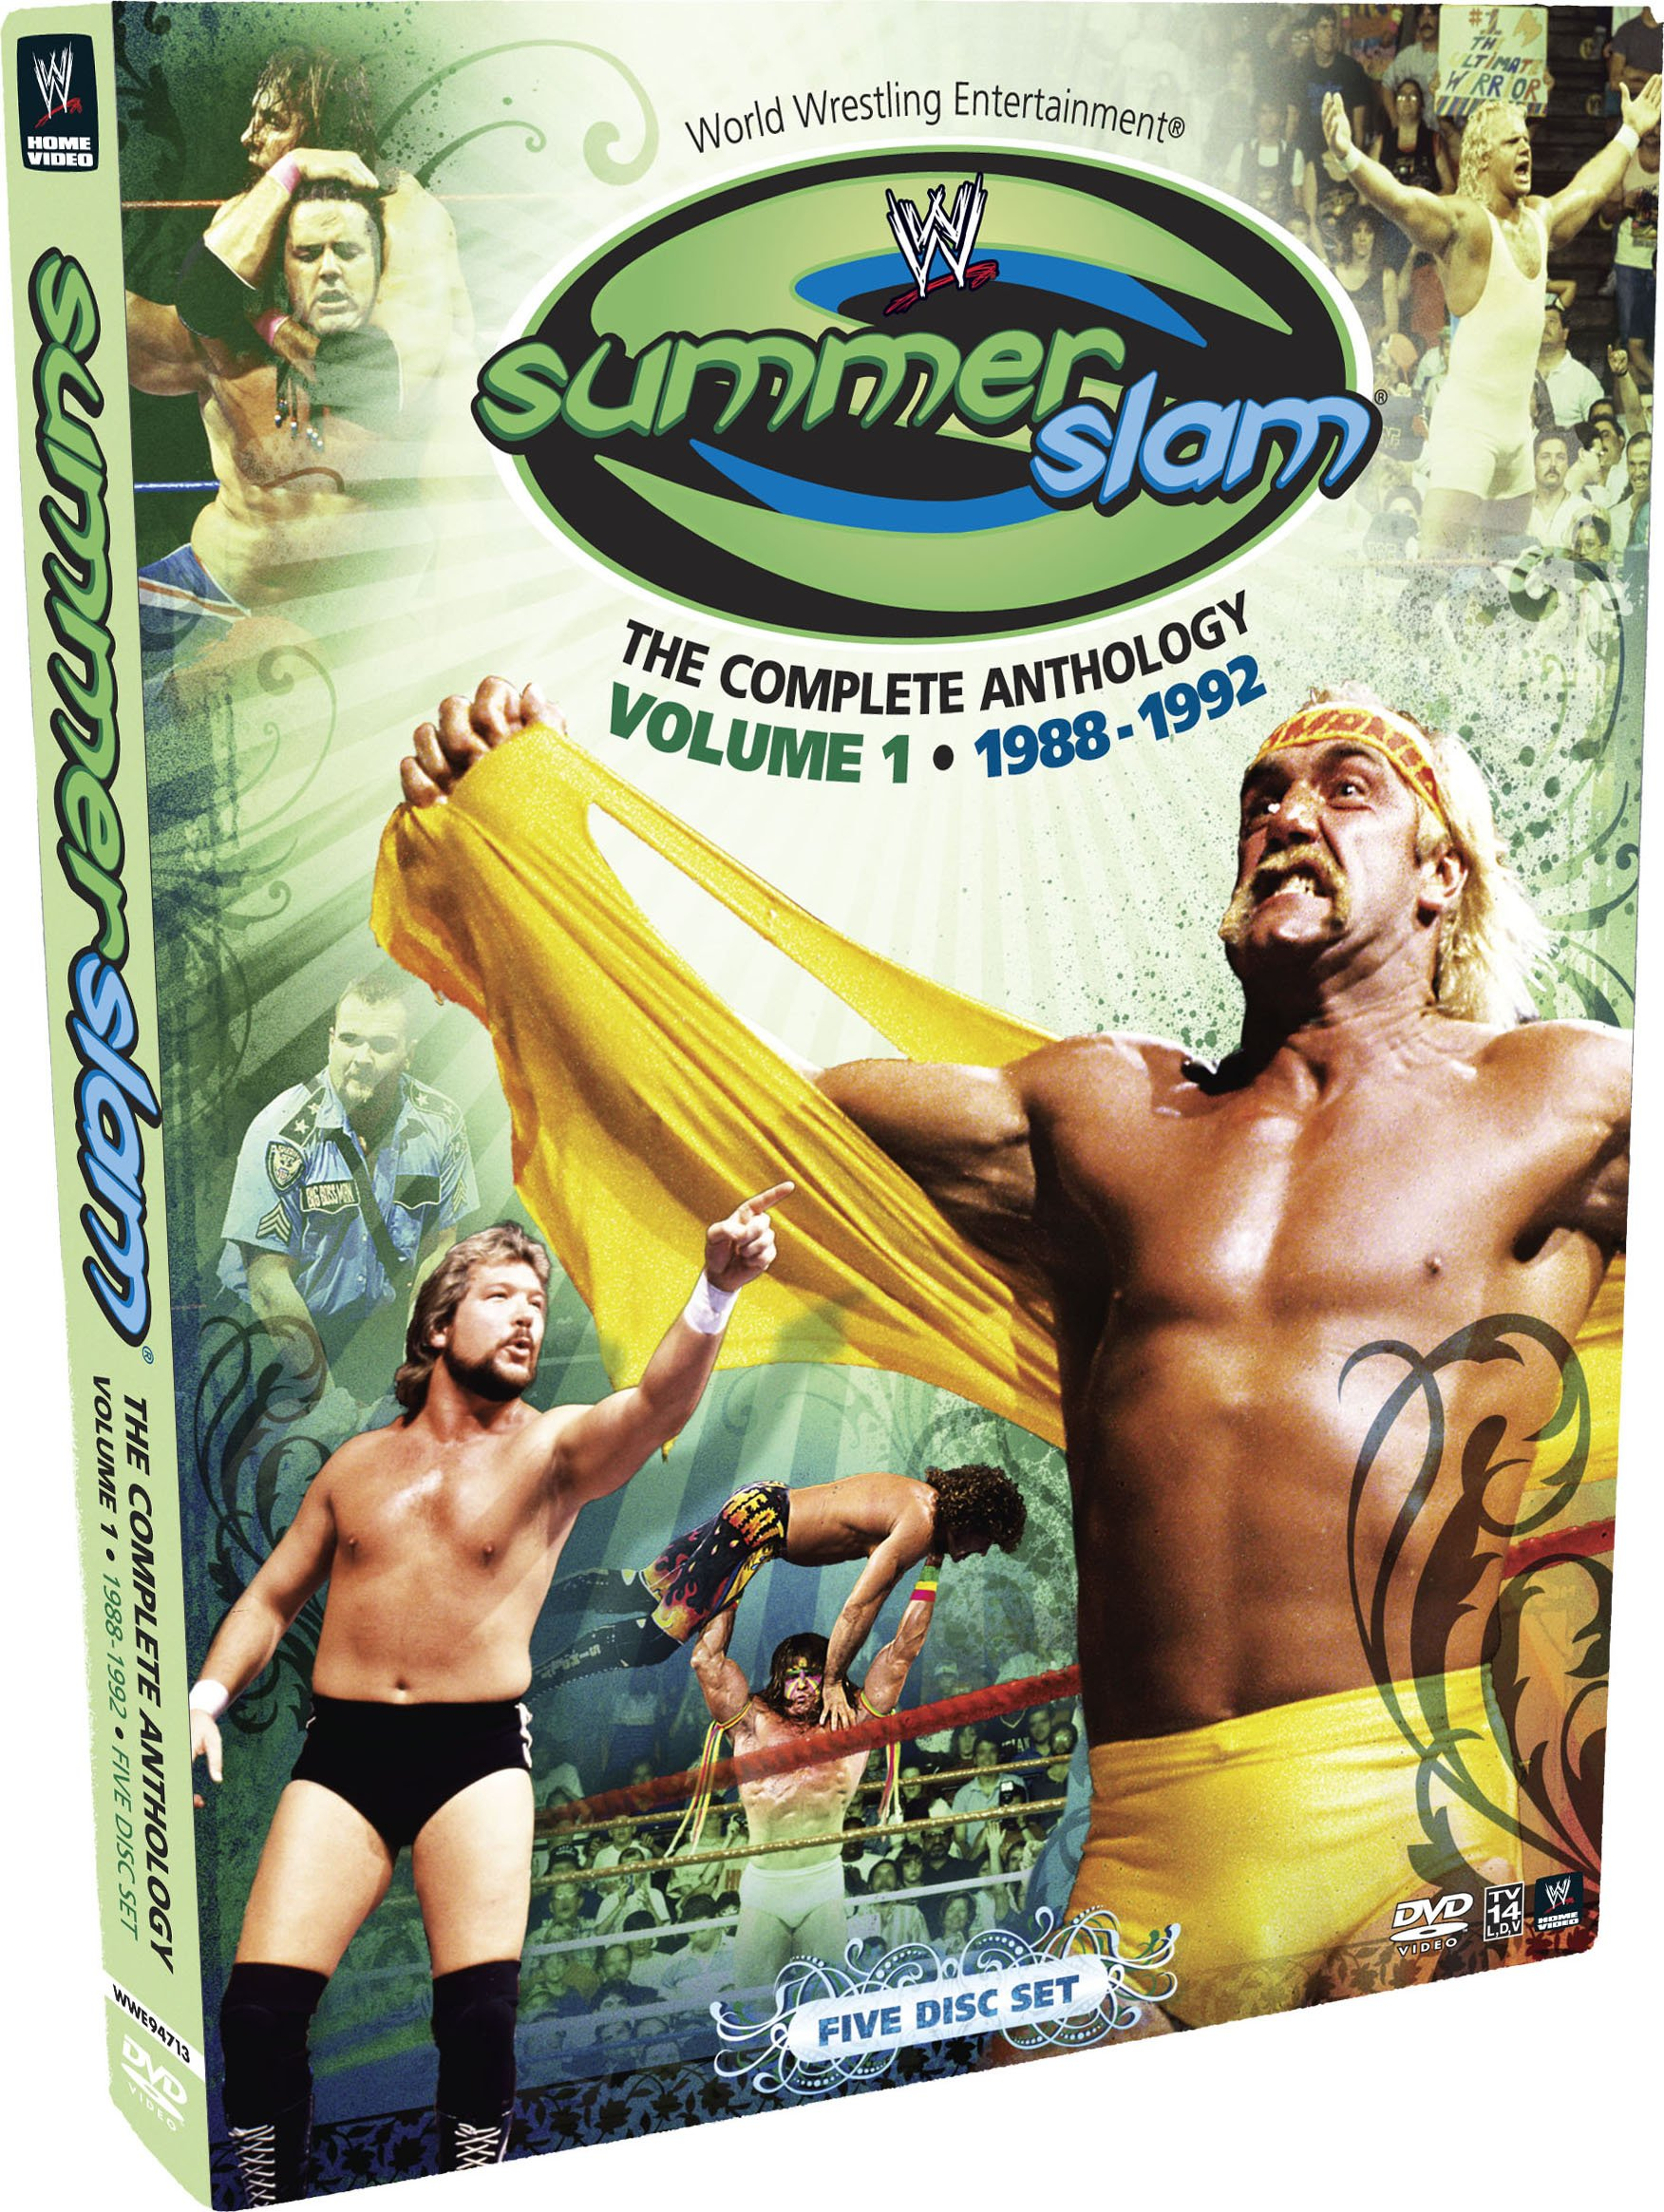 WWE: Summerslam - The Complete Anthology, Vol. 1 1988-1992 by WWE